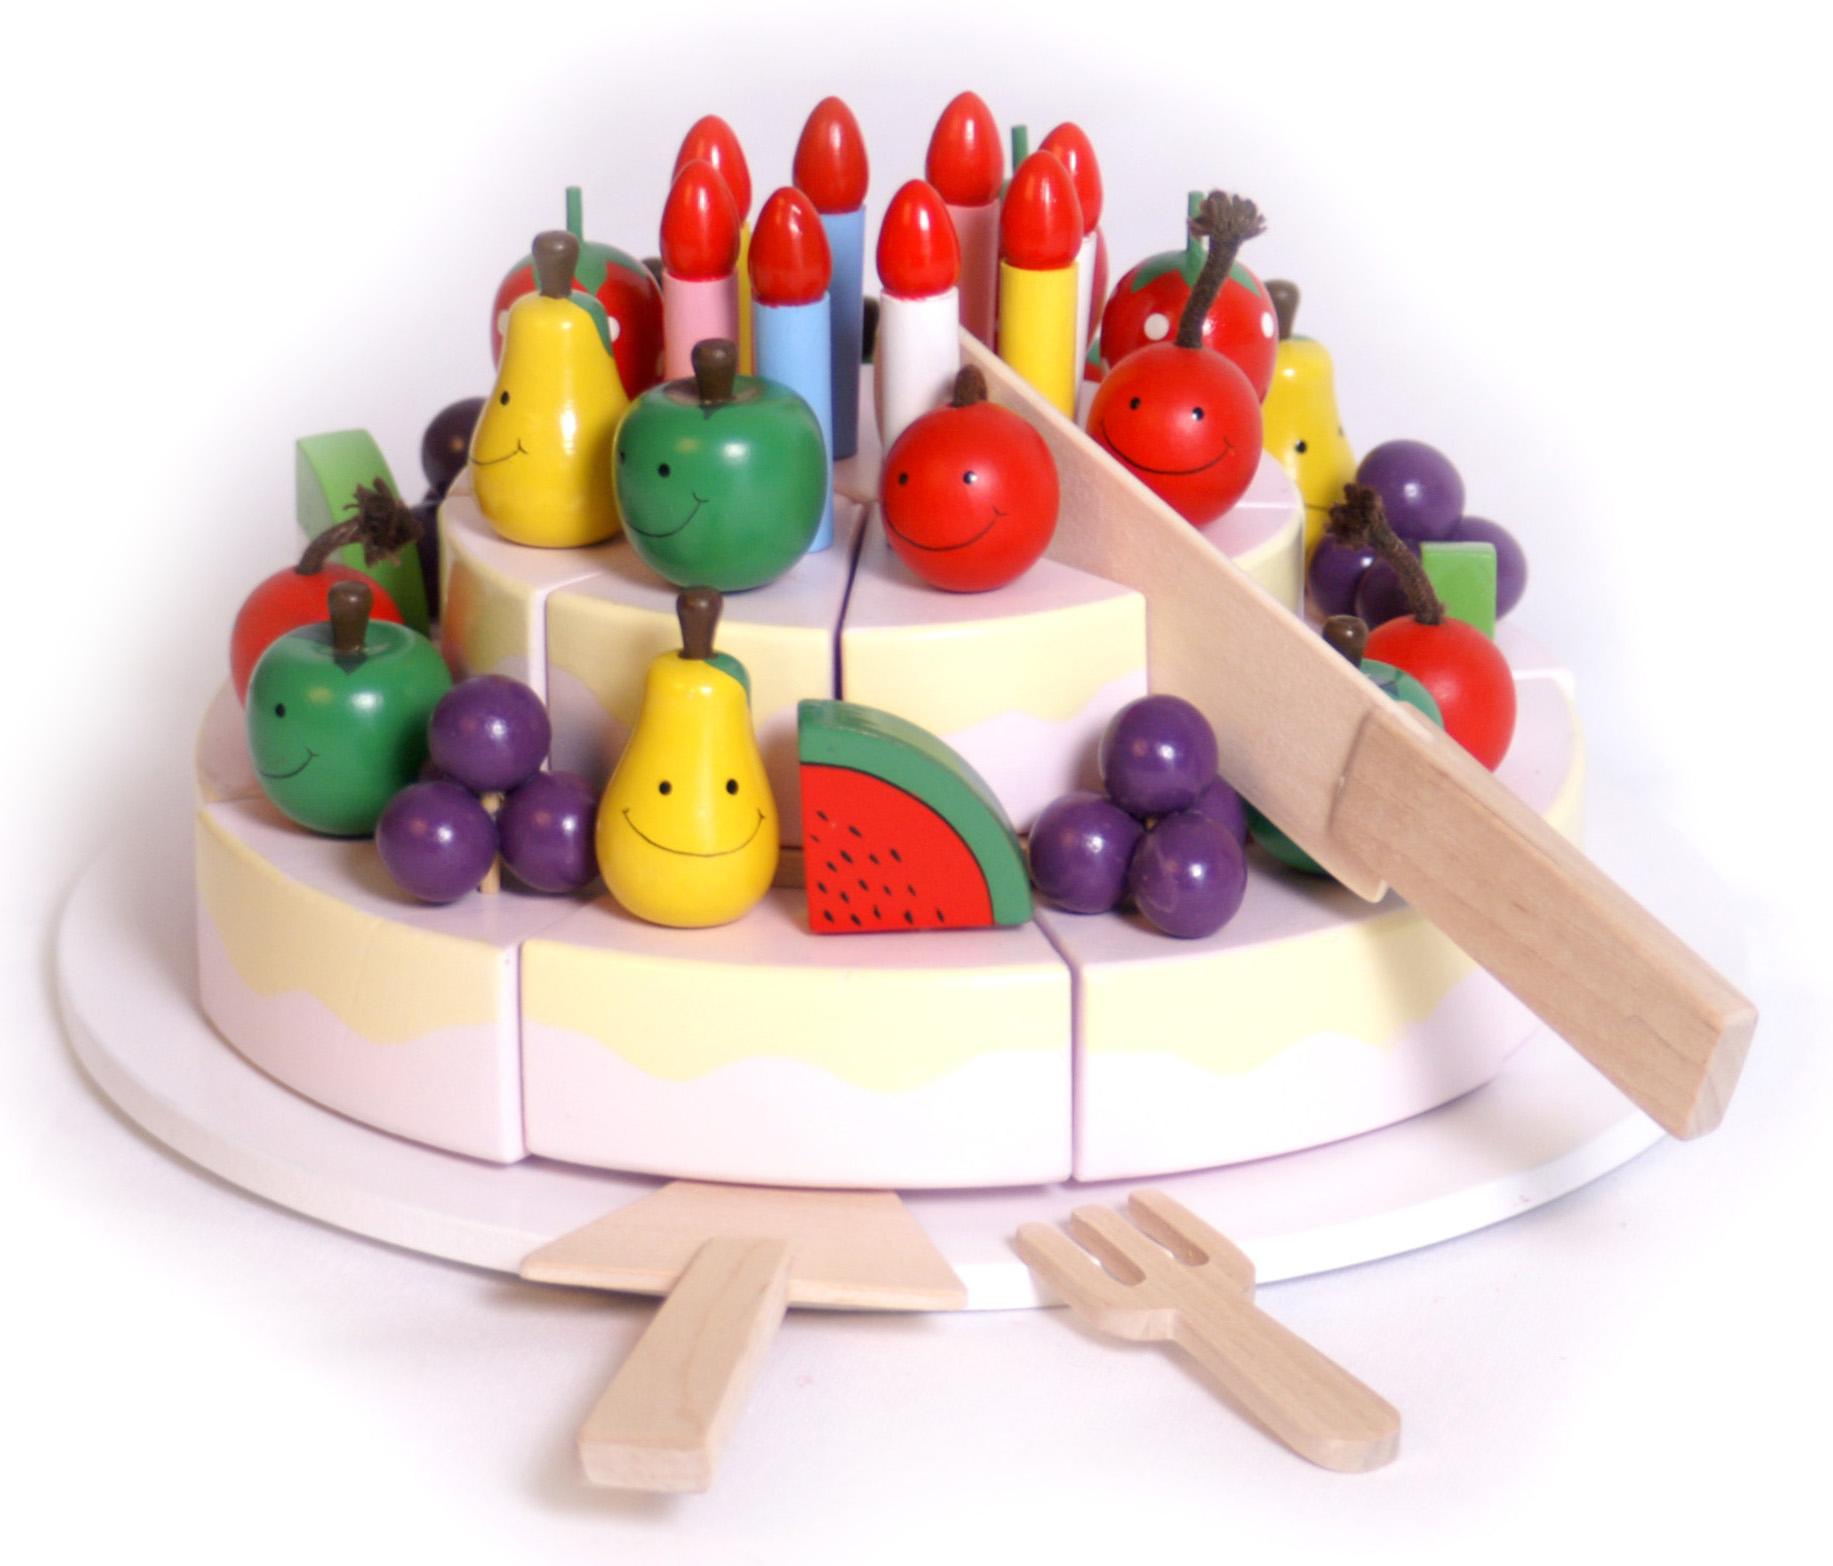 Birthday Cake Toy : Wooden happy birthday cake toy with platter knife fork and